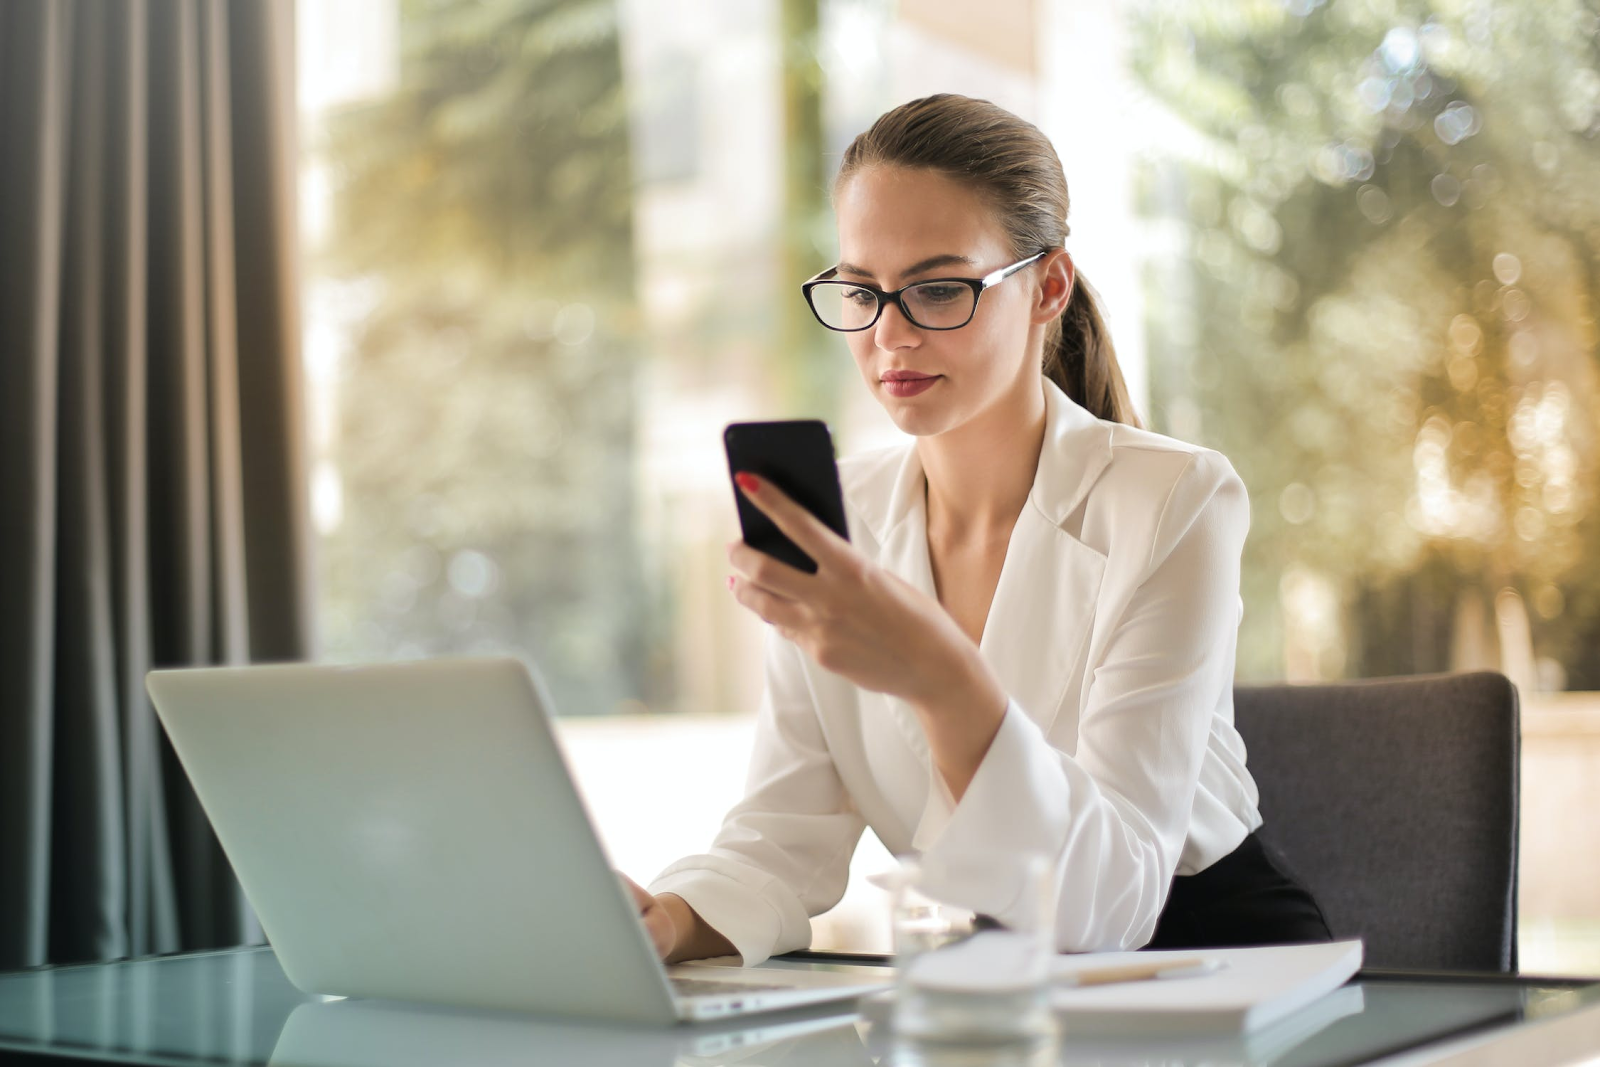 Woman wearing glasses checking her phone while working on her laptop